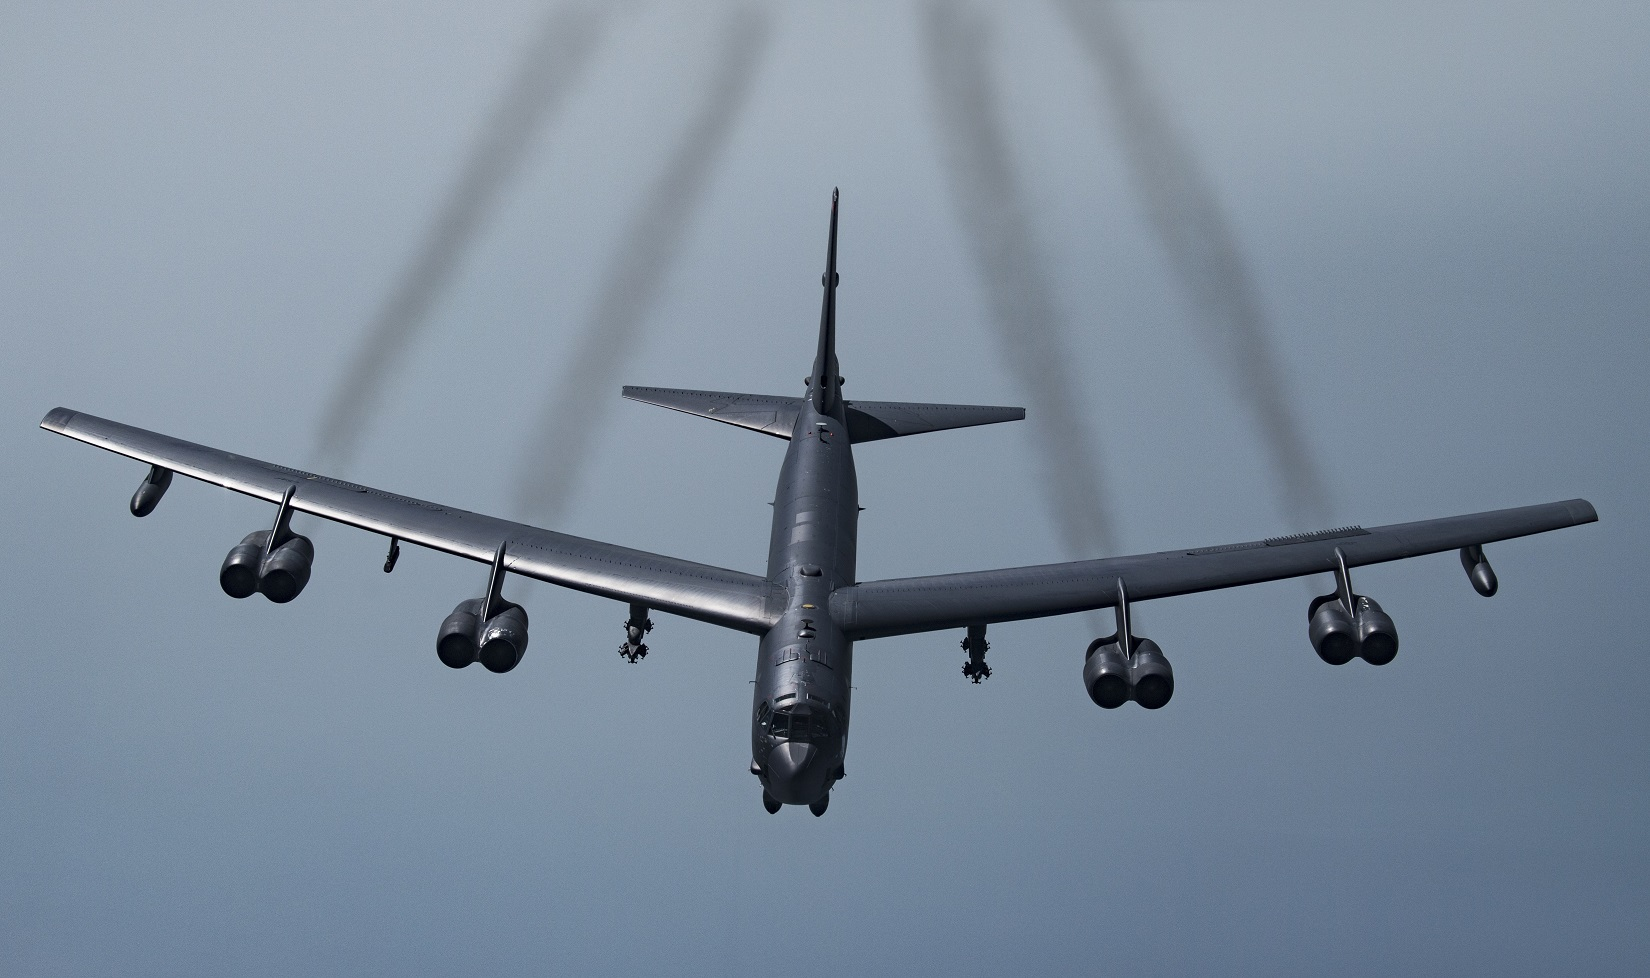 The U.S. Air Force Could Get a New Version of the Iconic B-52 Bomber